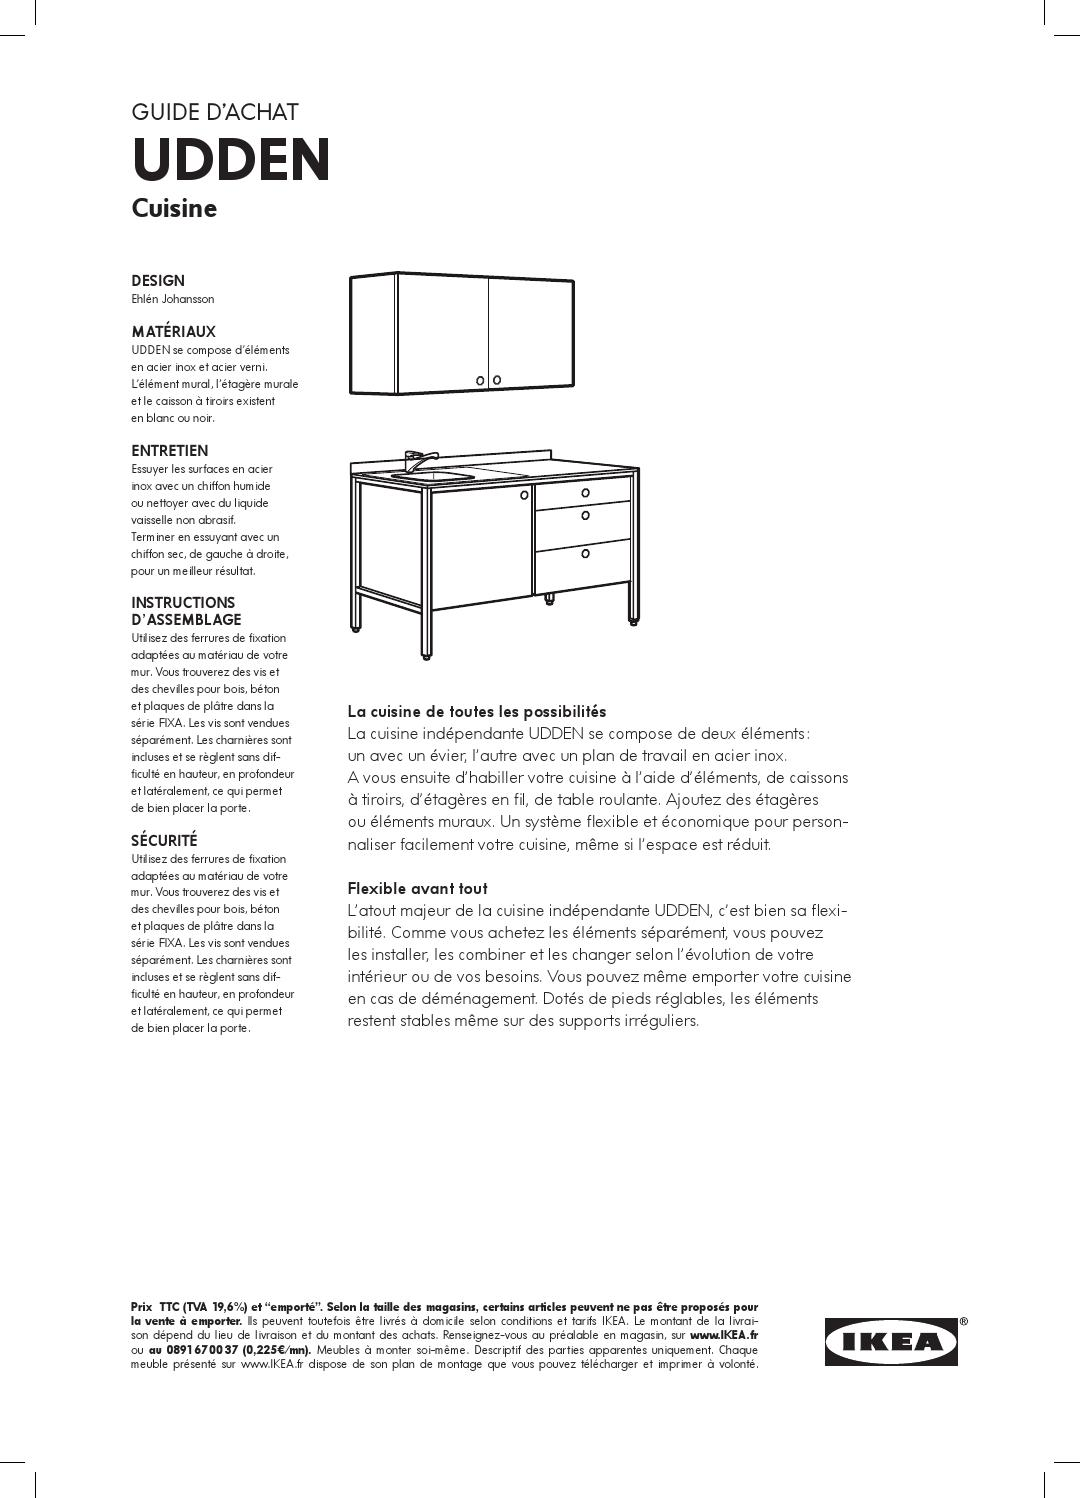 Udden ikea fr by ikea catalog issuu for Elements cuisine independants